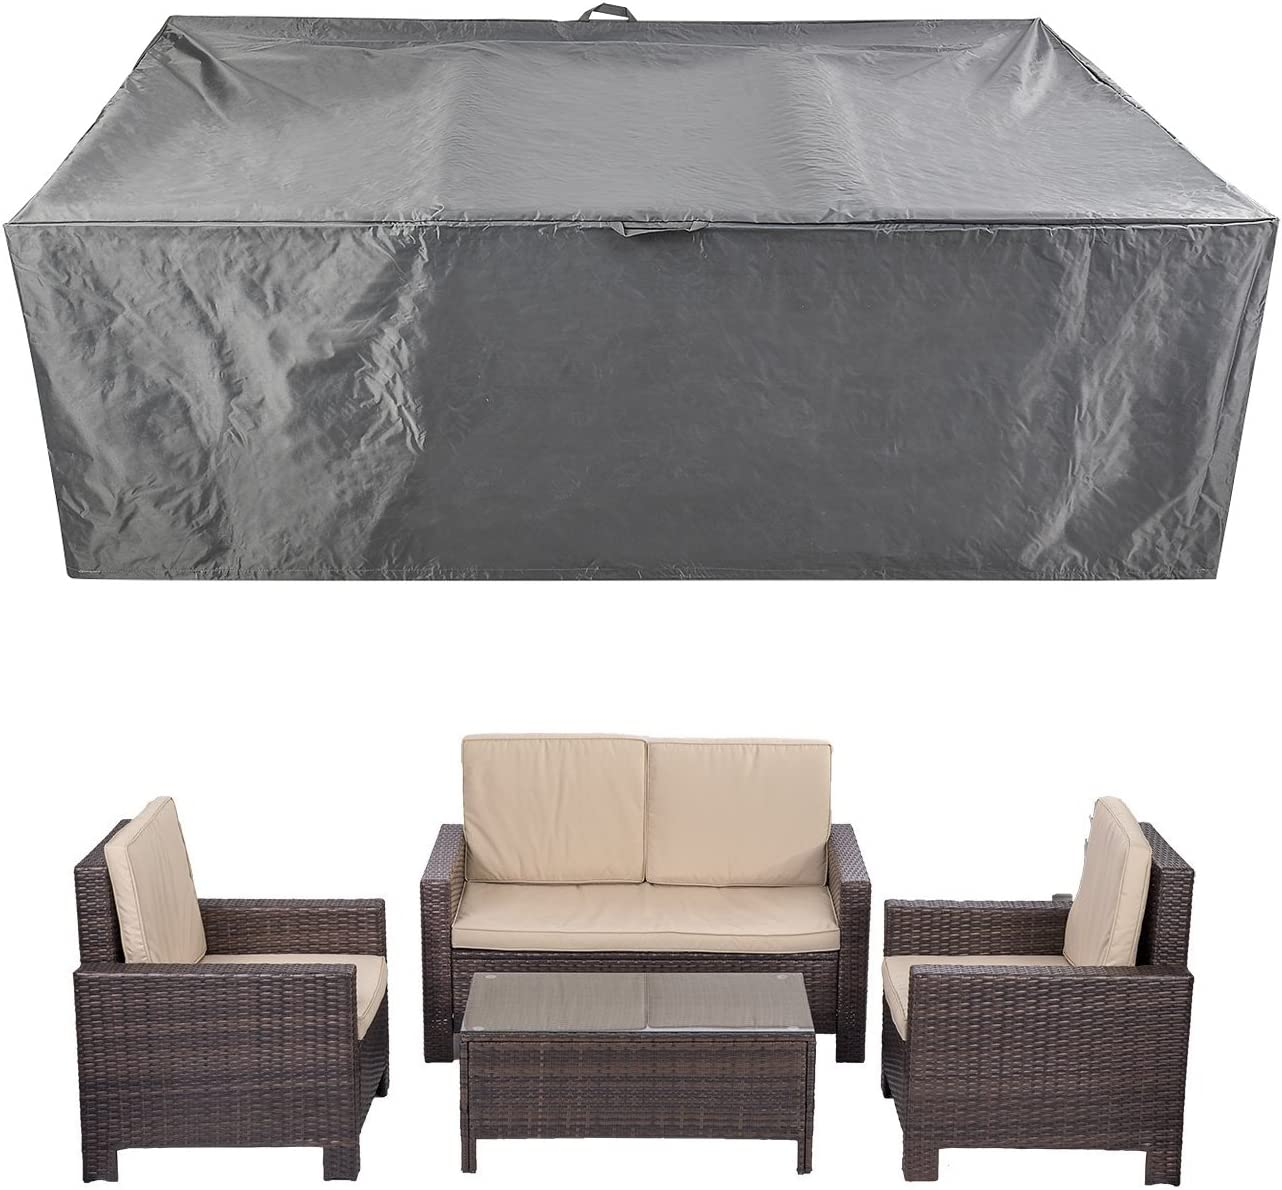 Coverking Club Outdoor Patio Rattan Furniture Cover Water Resistant Heavy Duty 88 Inches For 5 Pieces Sofa Set Amazon Co Uk Garden Outdoors